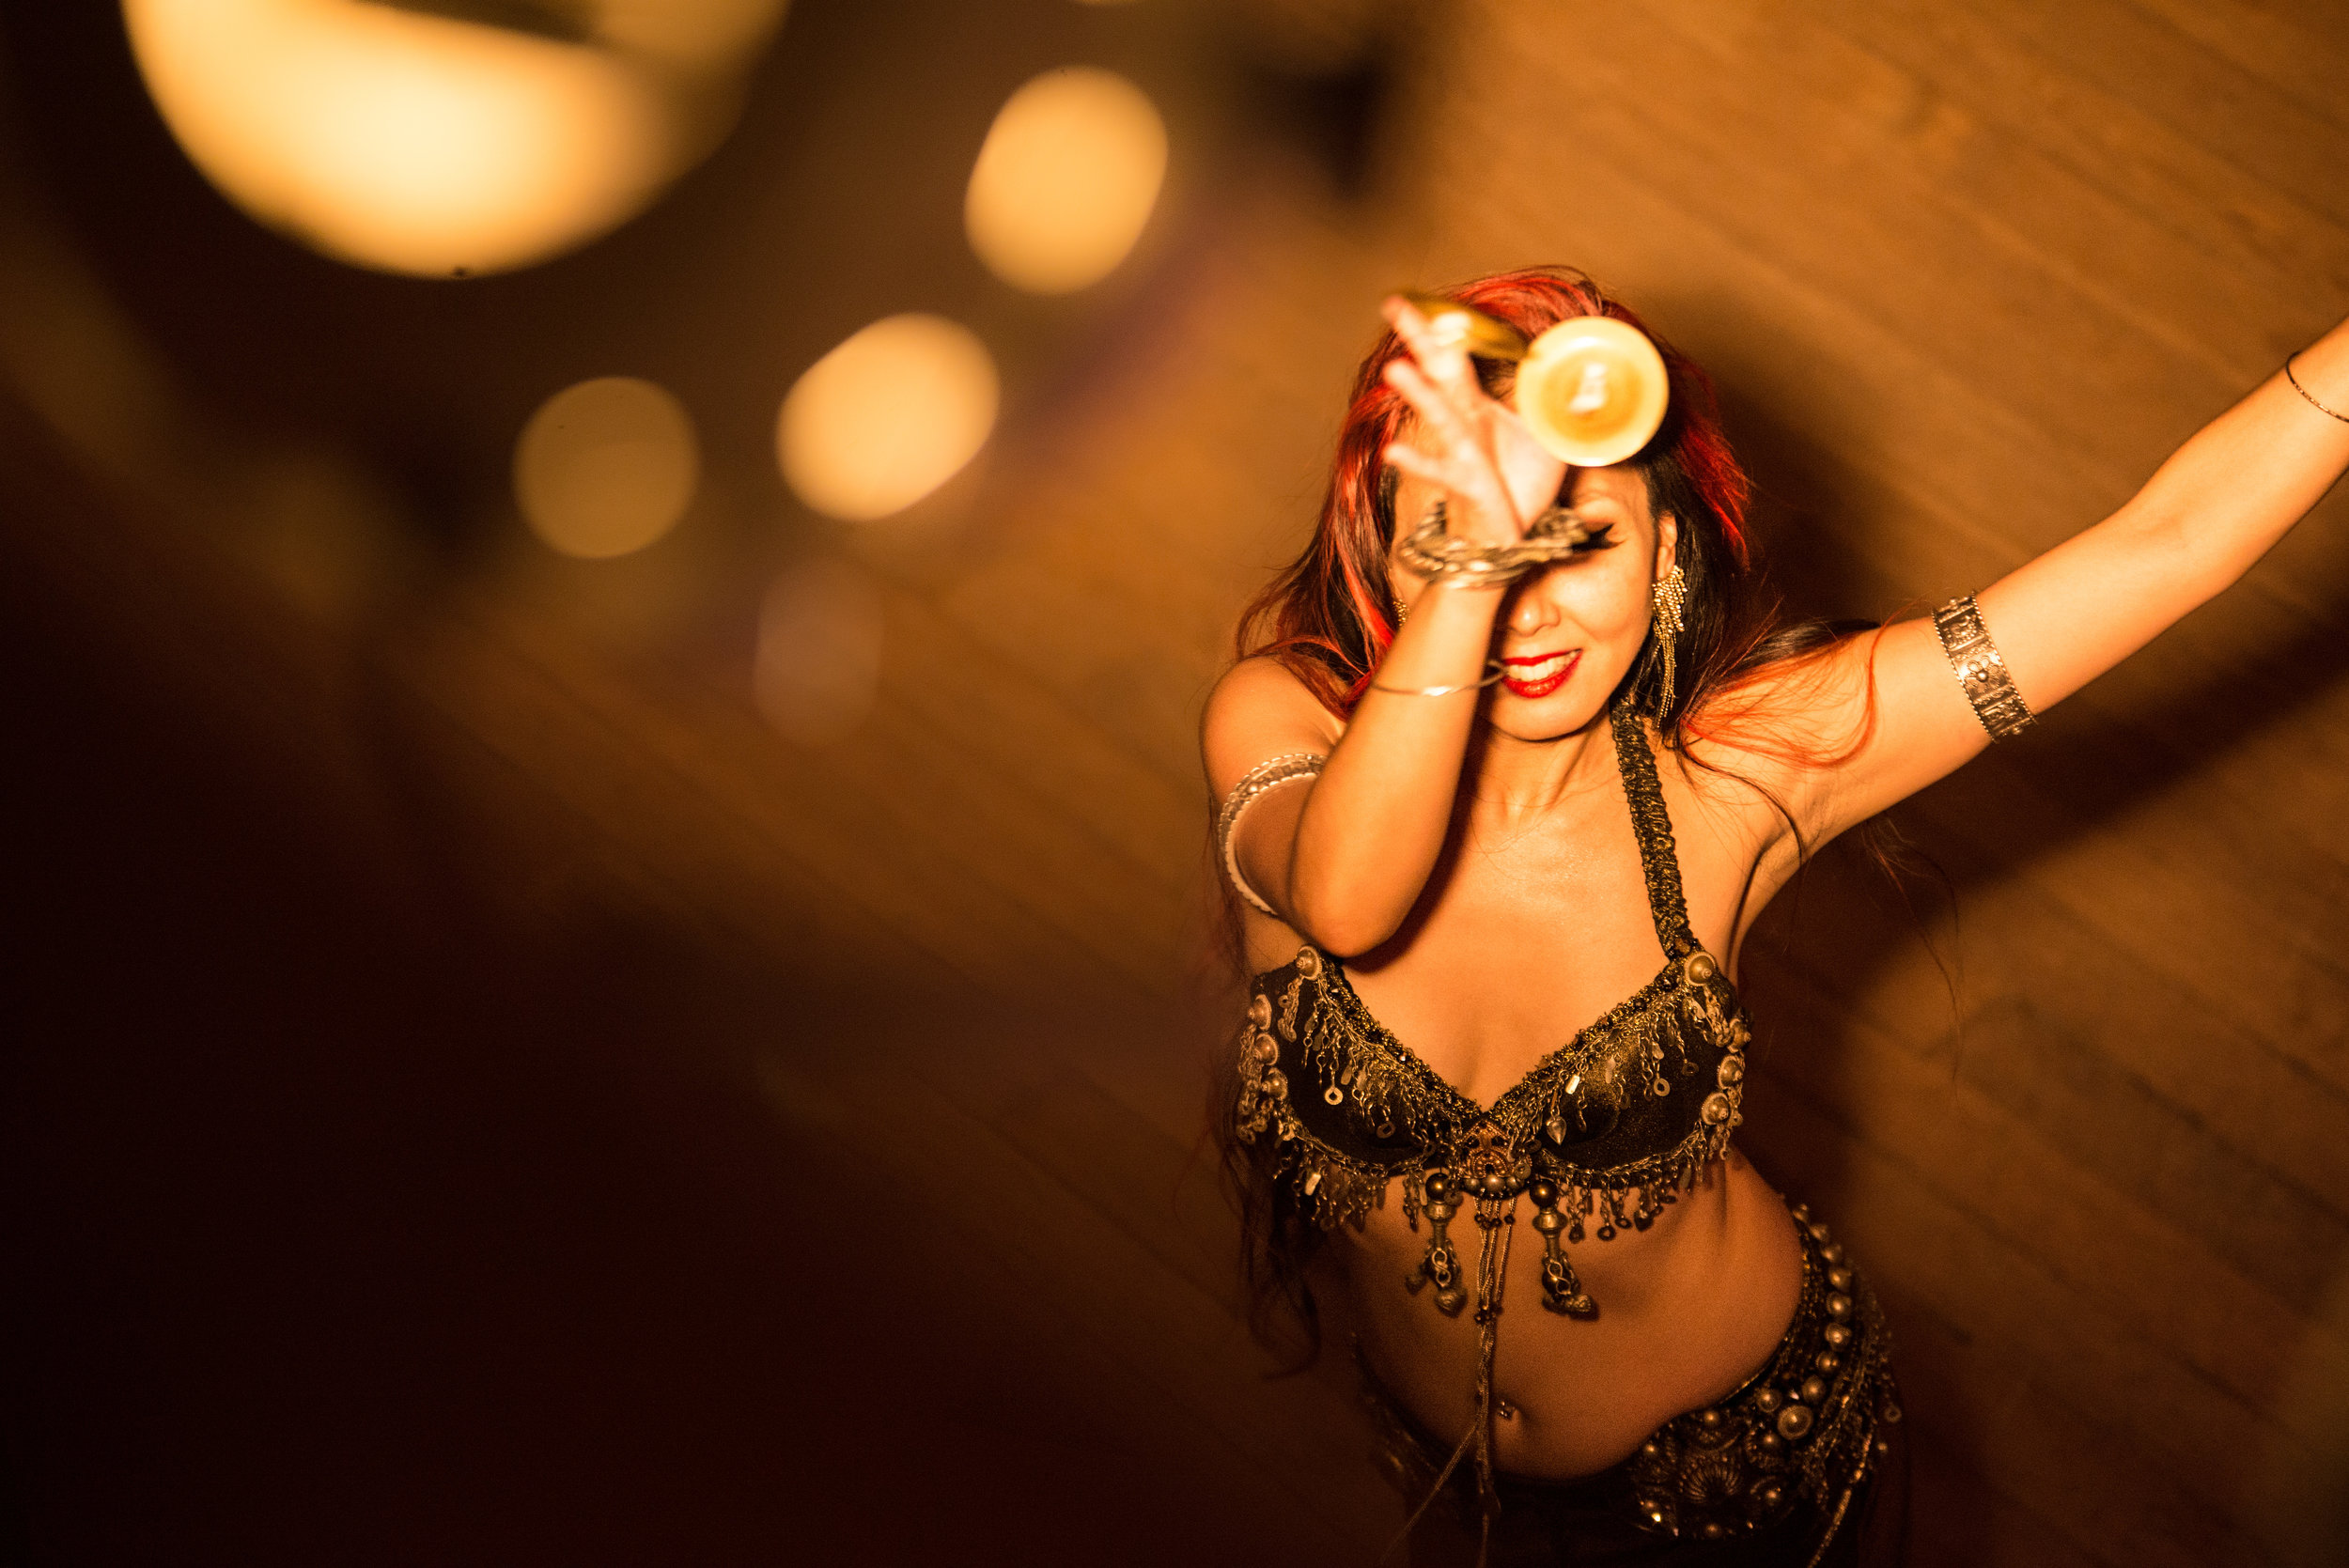 Belly Dance performance captured by Magdalena Smolarska Photography